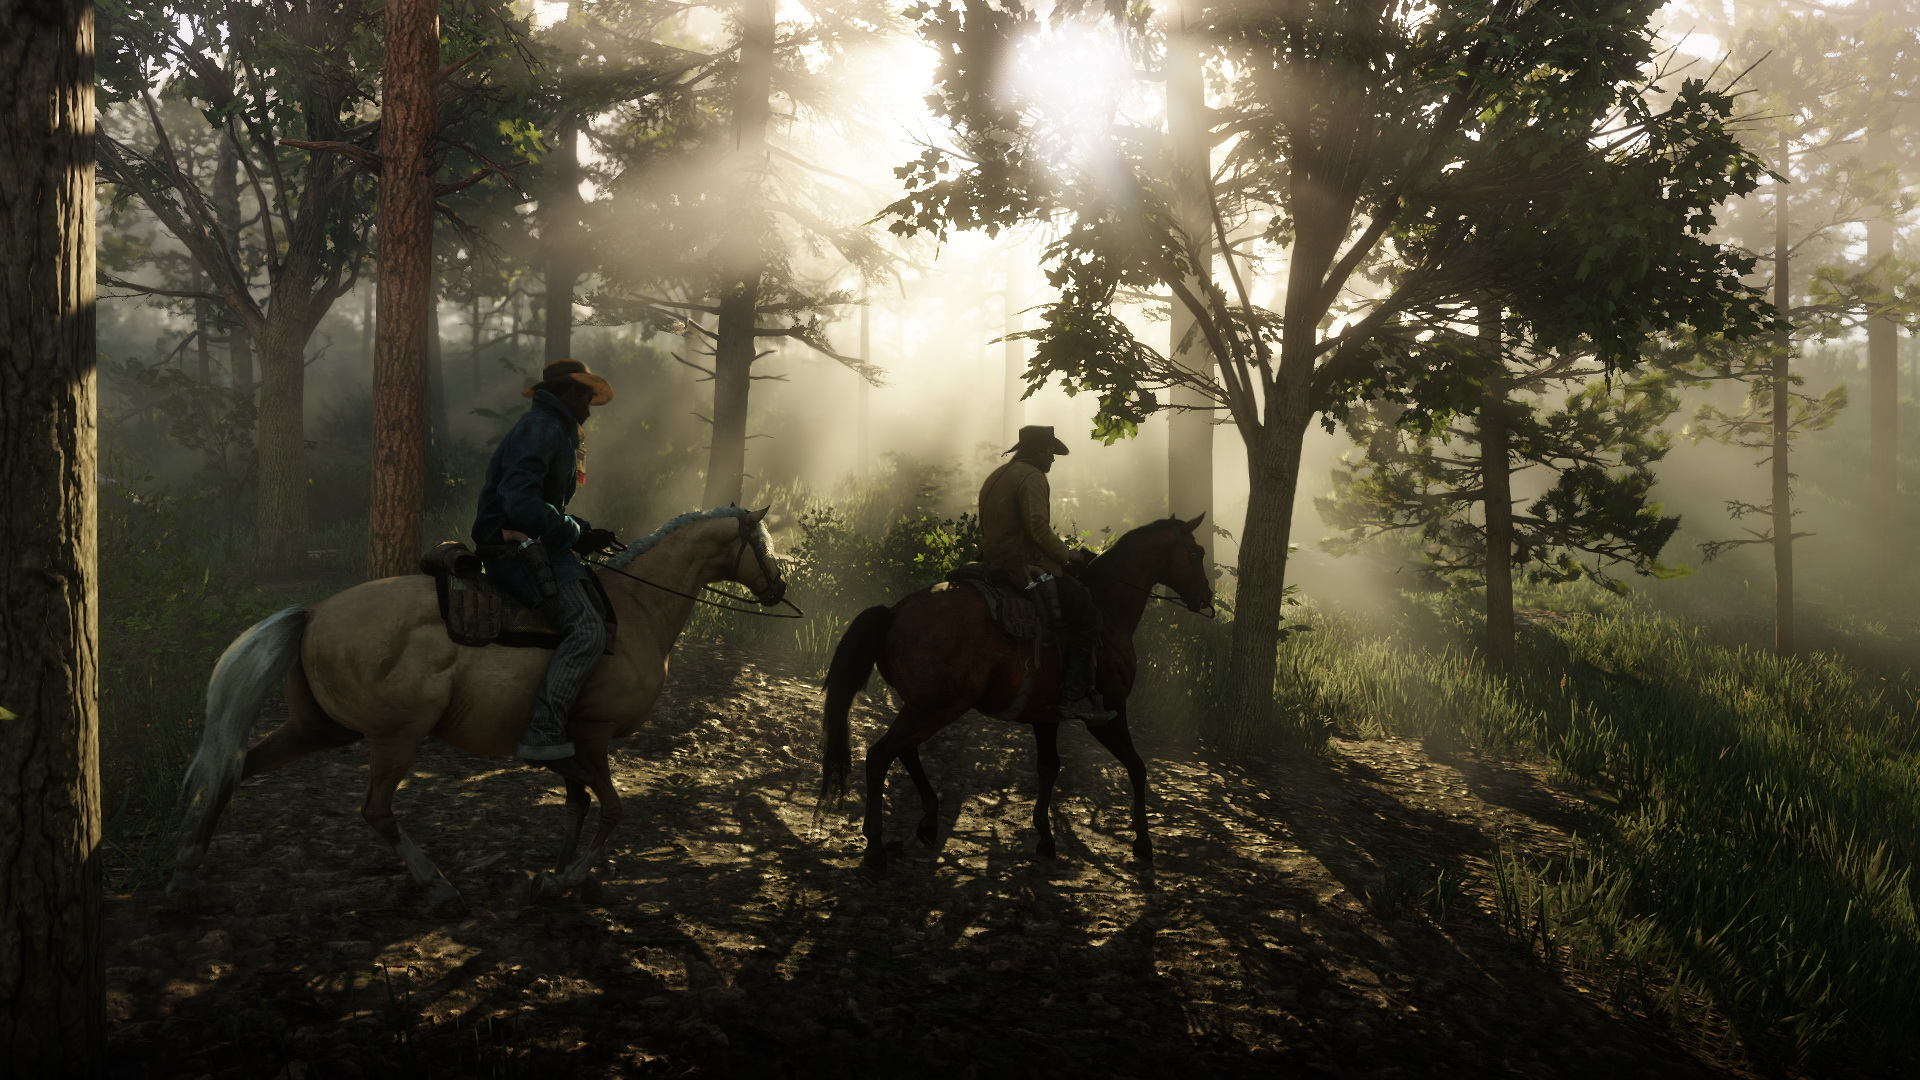 Rockstar Releases More Red Dead Redemption 2 Screenshots